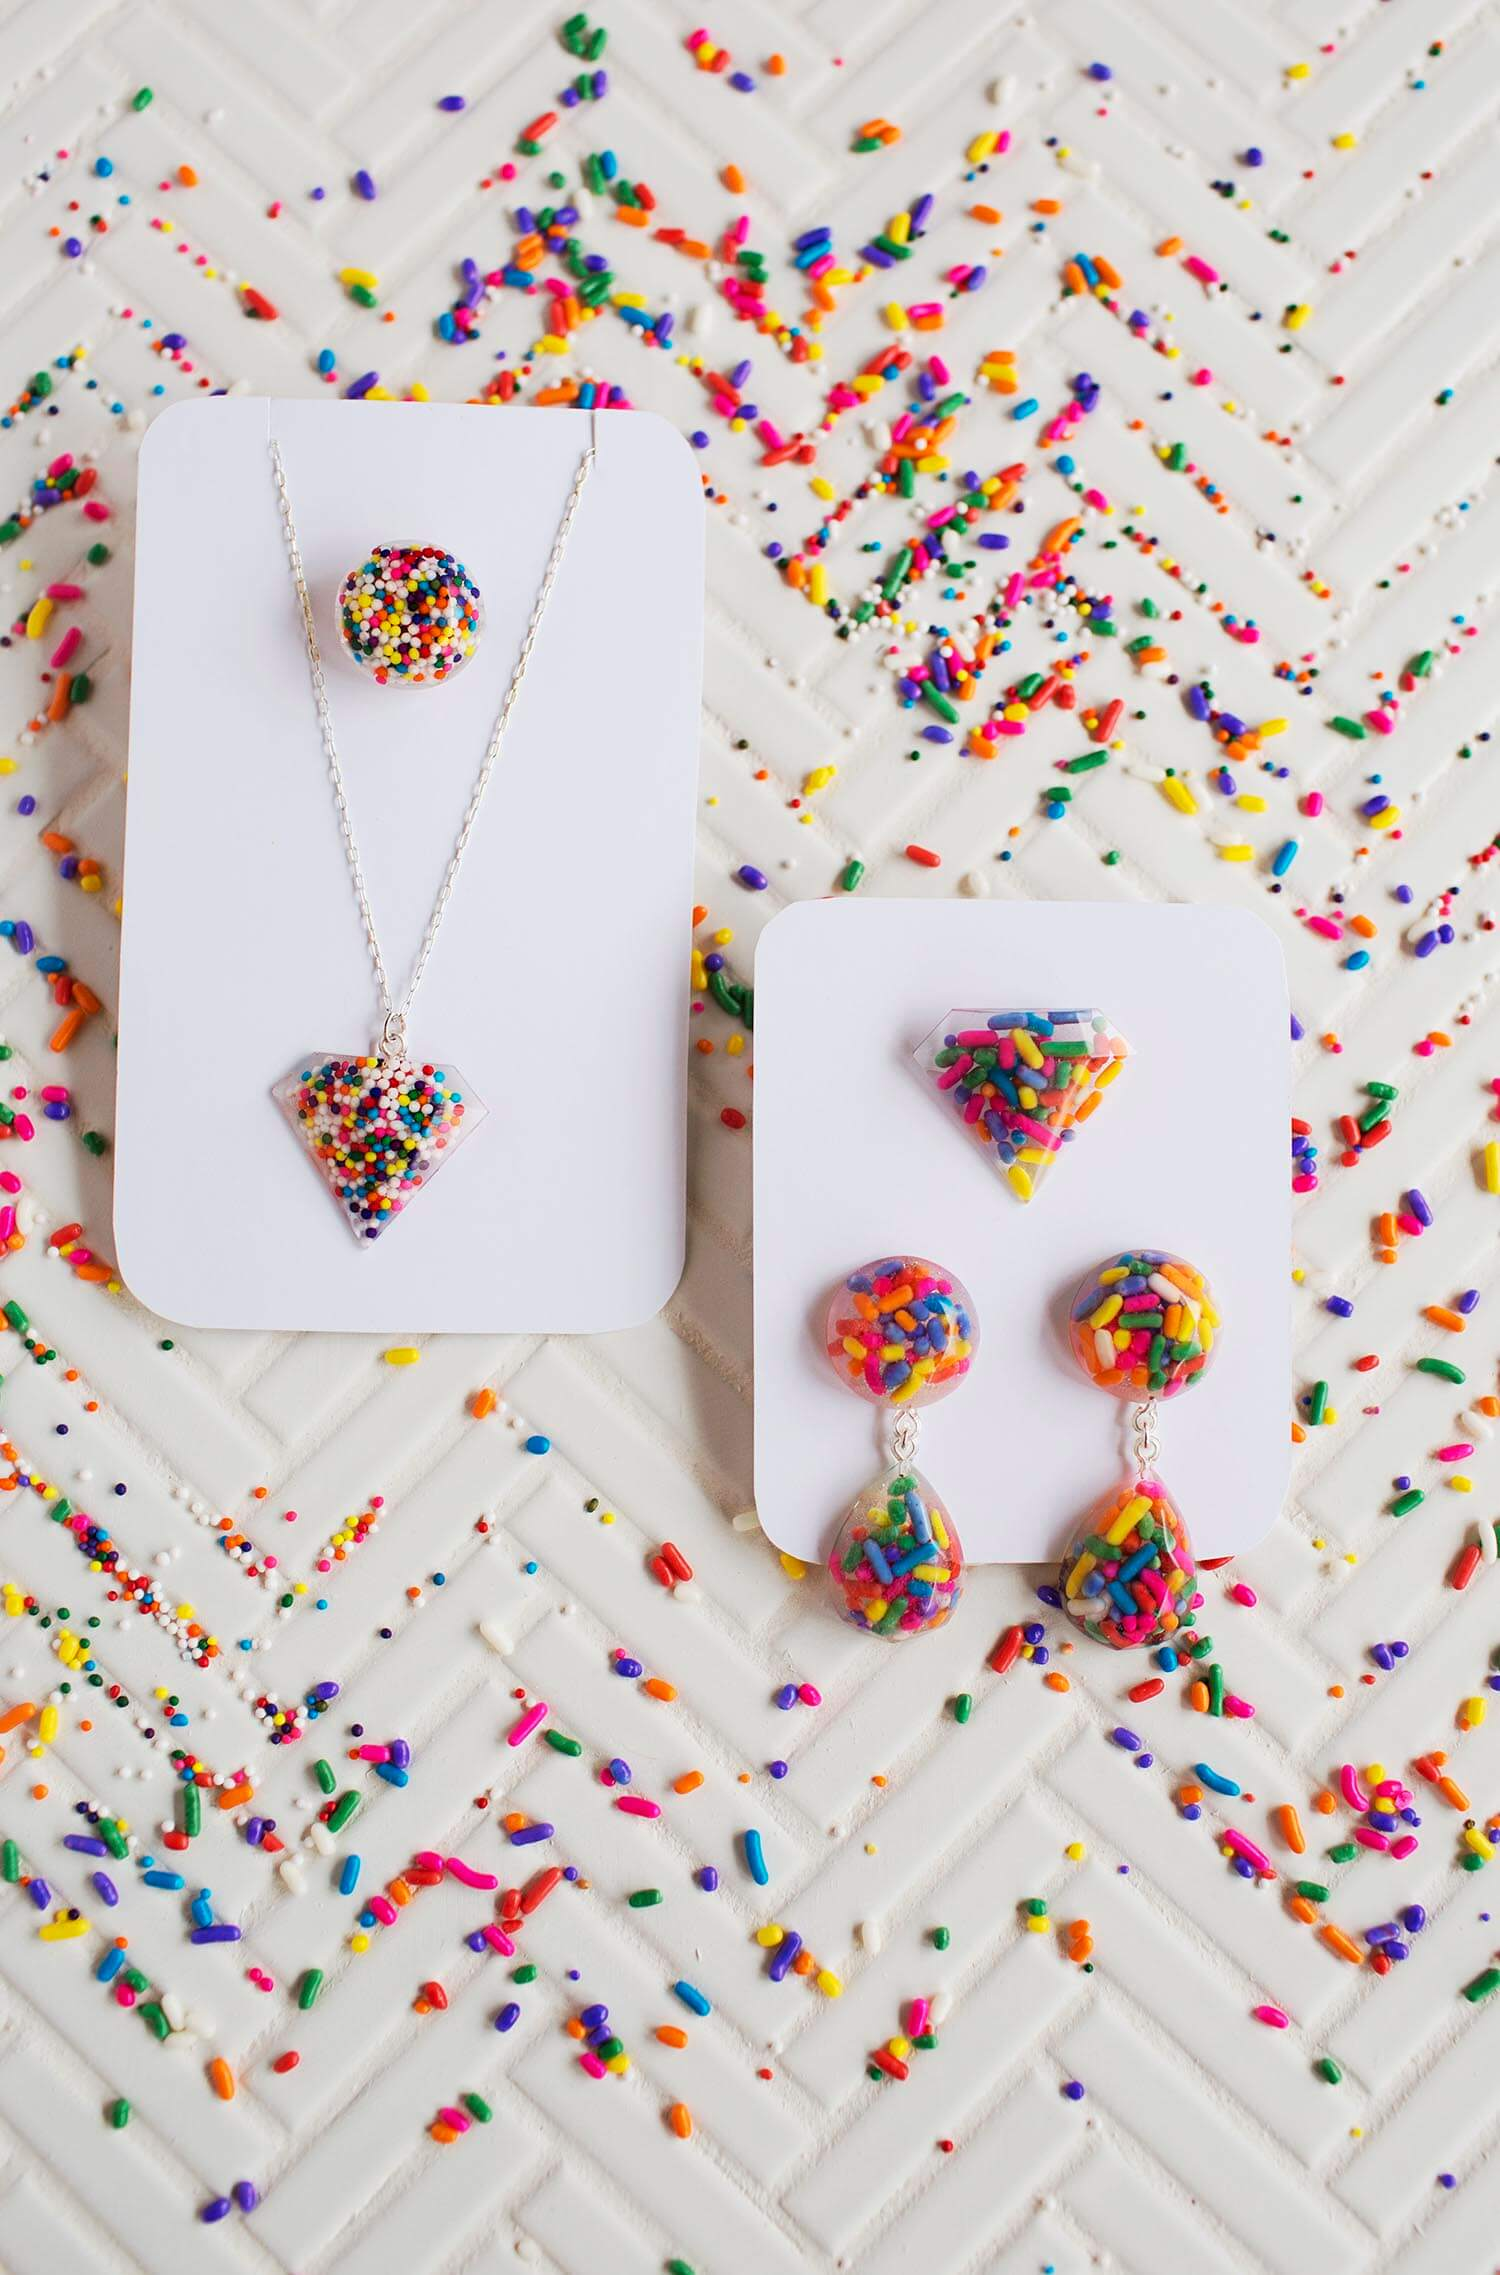 Sprinkle Epoxy Resin Jewelry